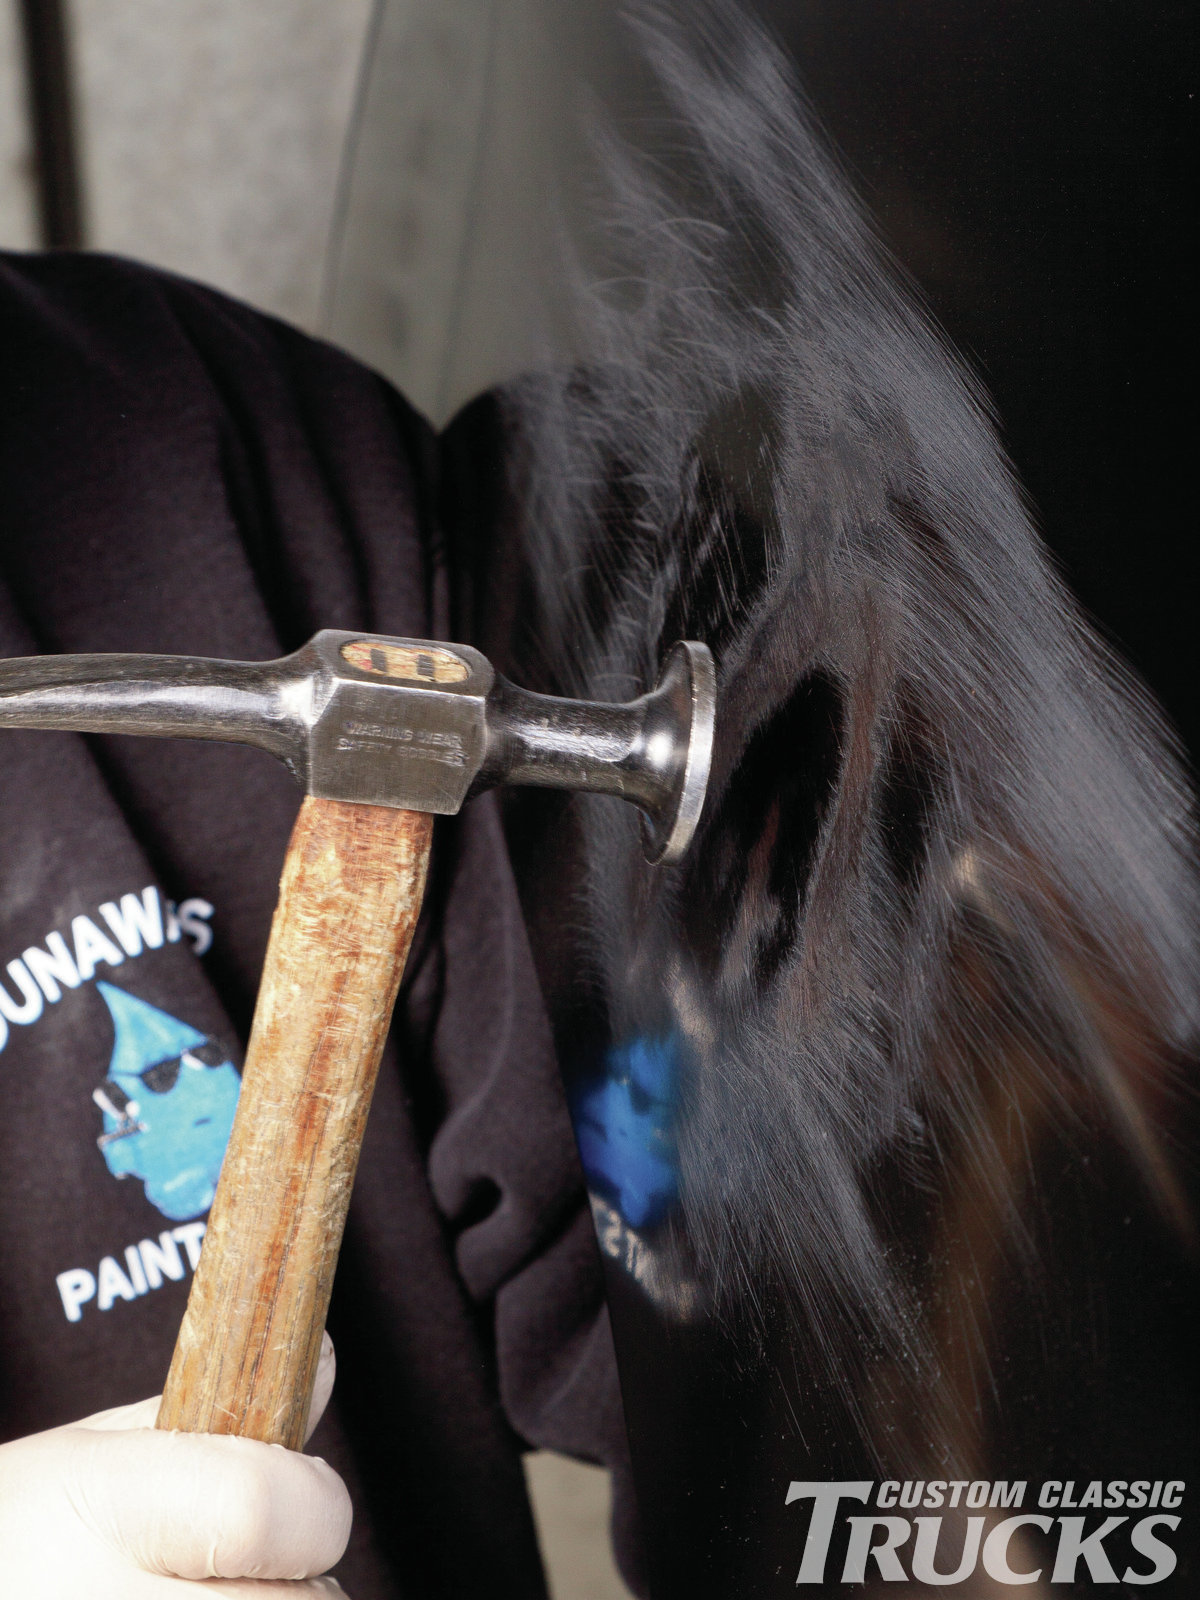 15. A traditional curved cross chisel body hammer is now used, backed by a toe dolly to massage the remaining low spots.